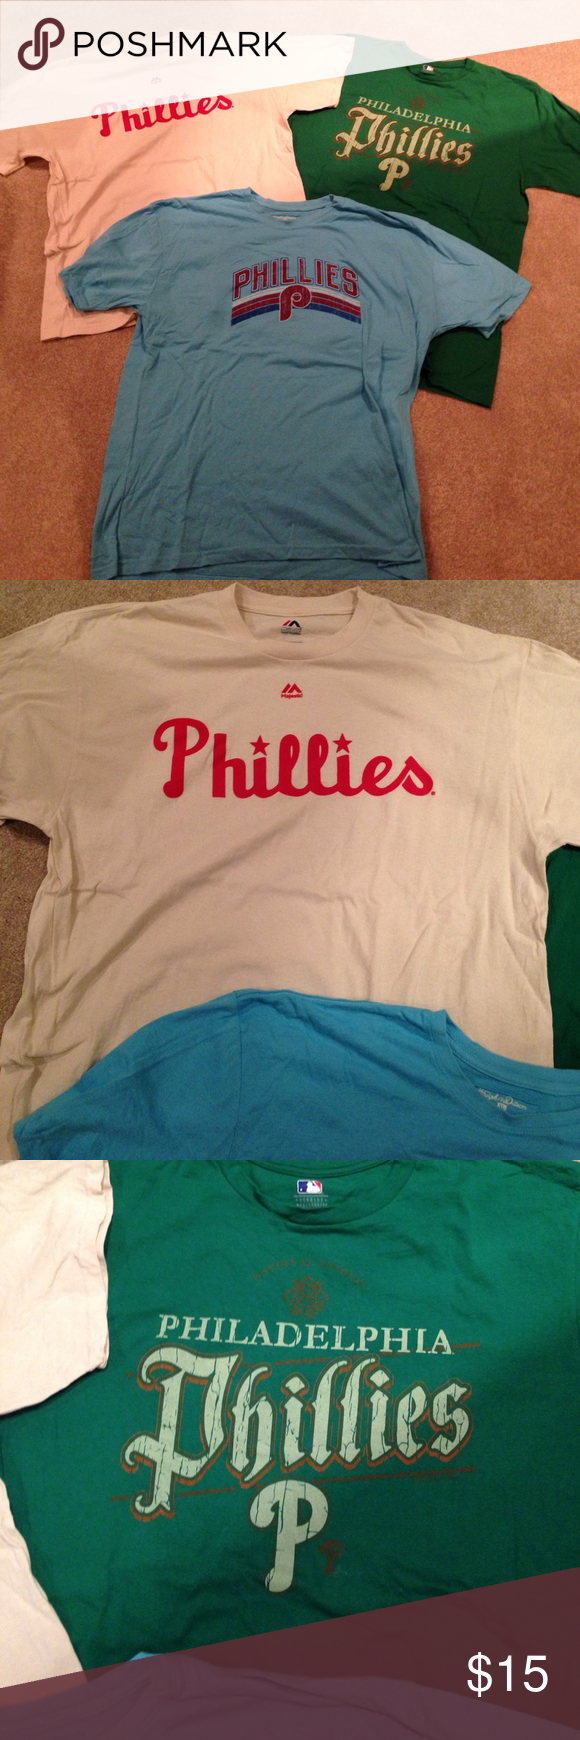 Bundle of 3 Men's Phillies Shirts Bundle of 3 Men's Phillies Shirts. One is off white with red lettering. One is green and one is light blue. All 100% cotton. Shirts Tees - Short Sleeve